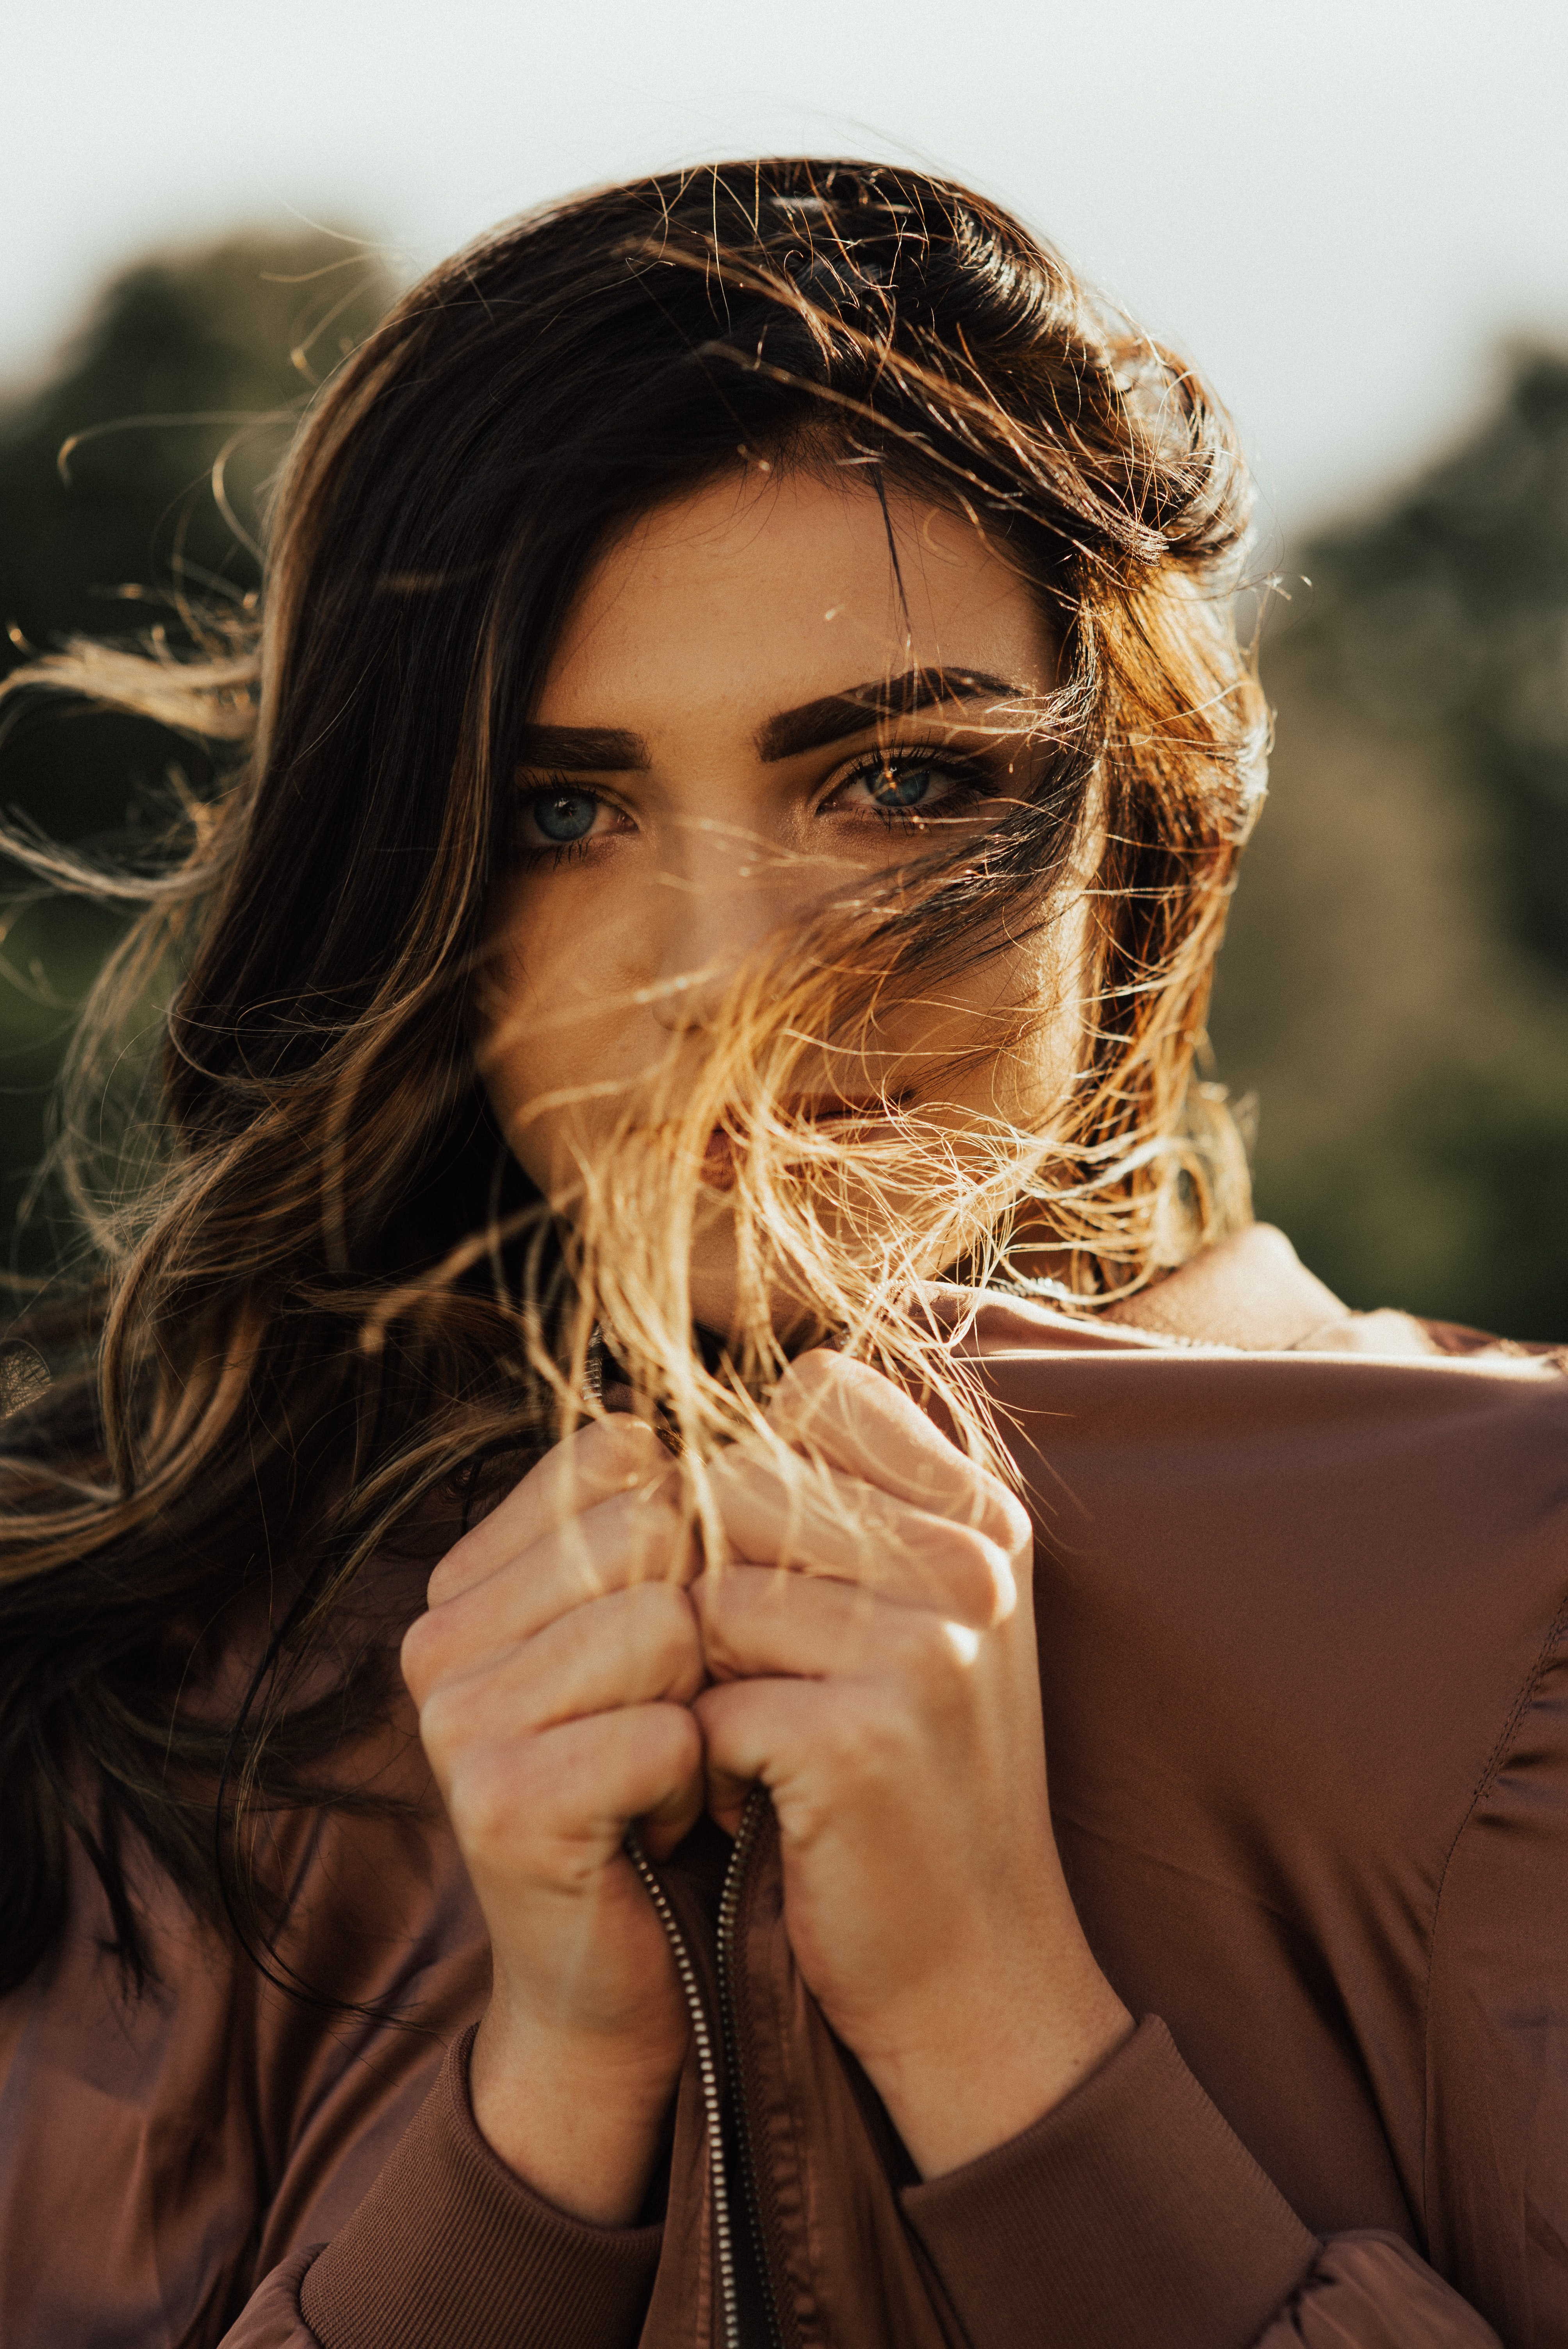 A woman in a brown jacket with her hair blowing in the wind in Salt Lake City